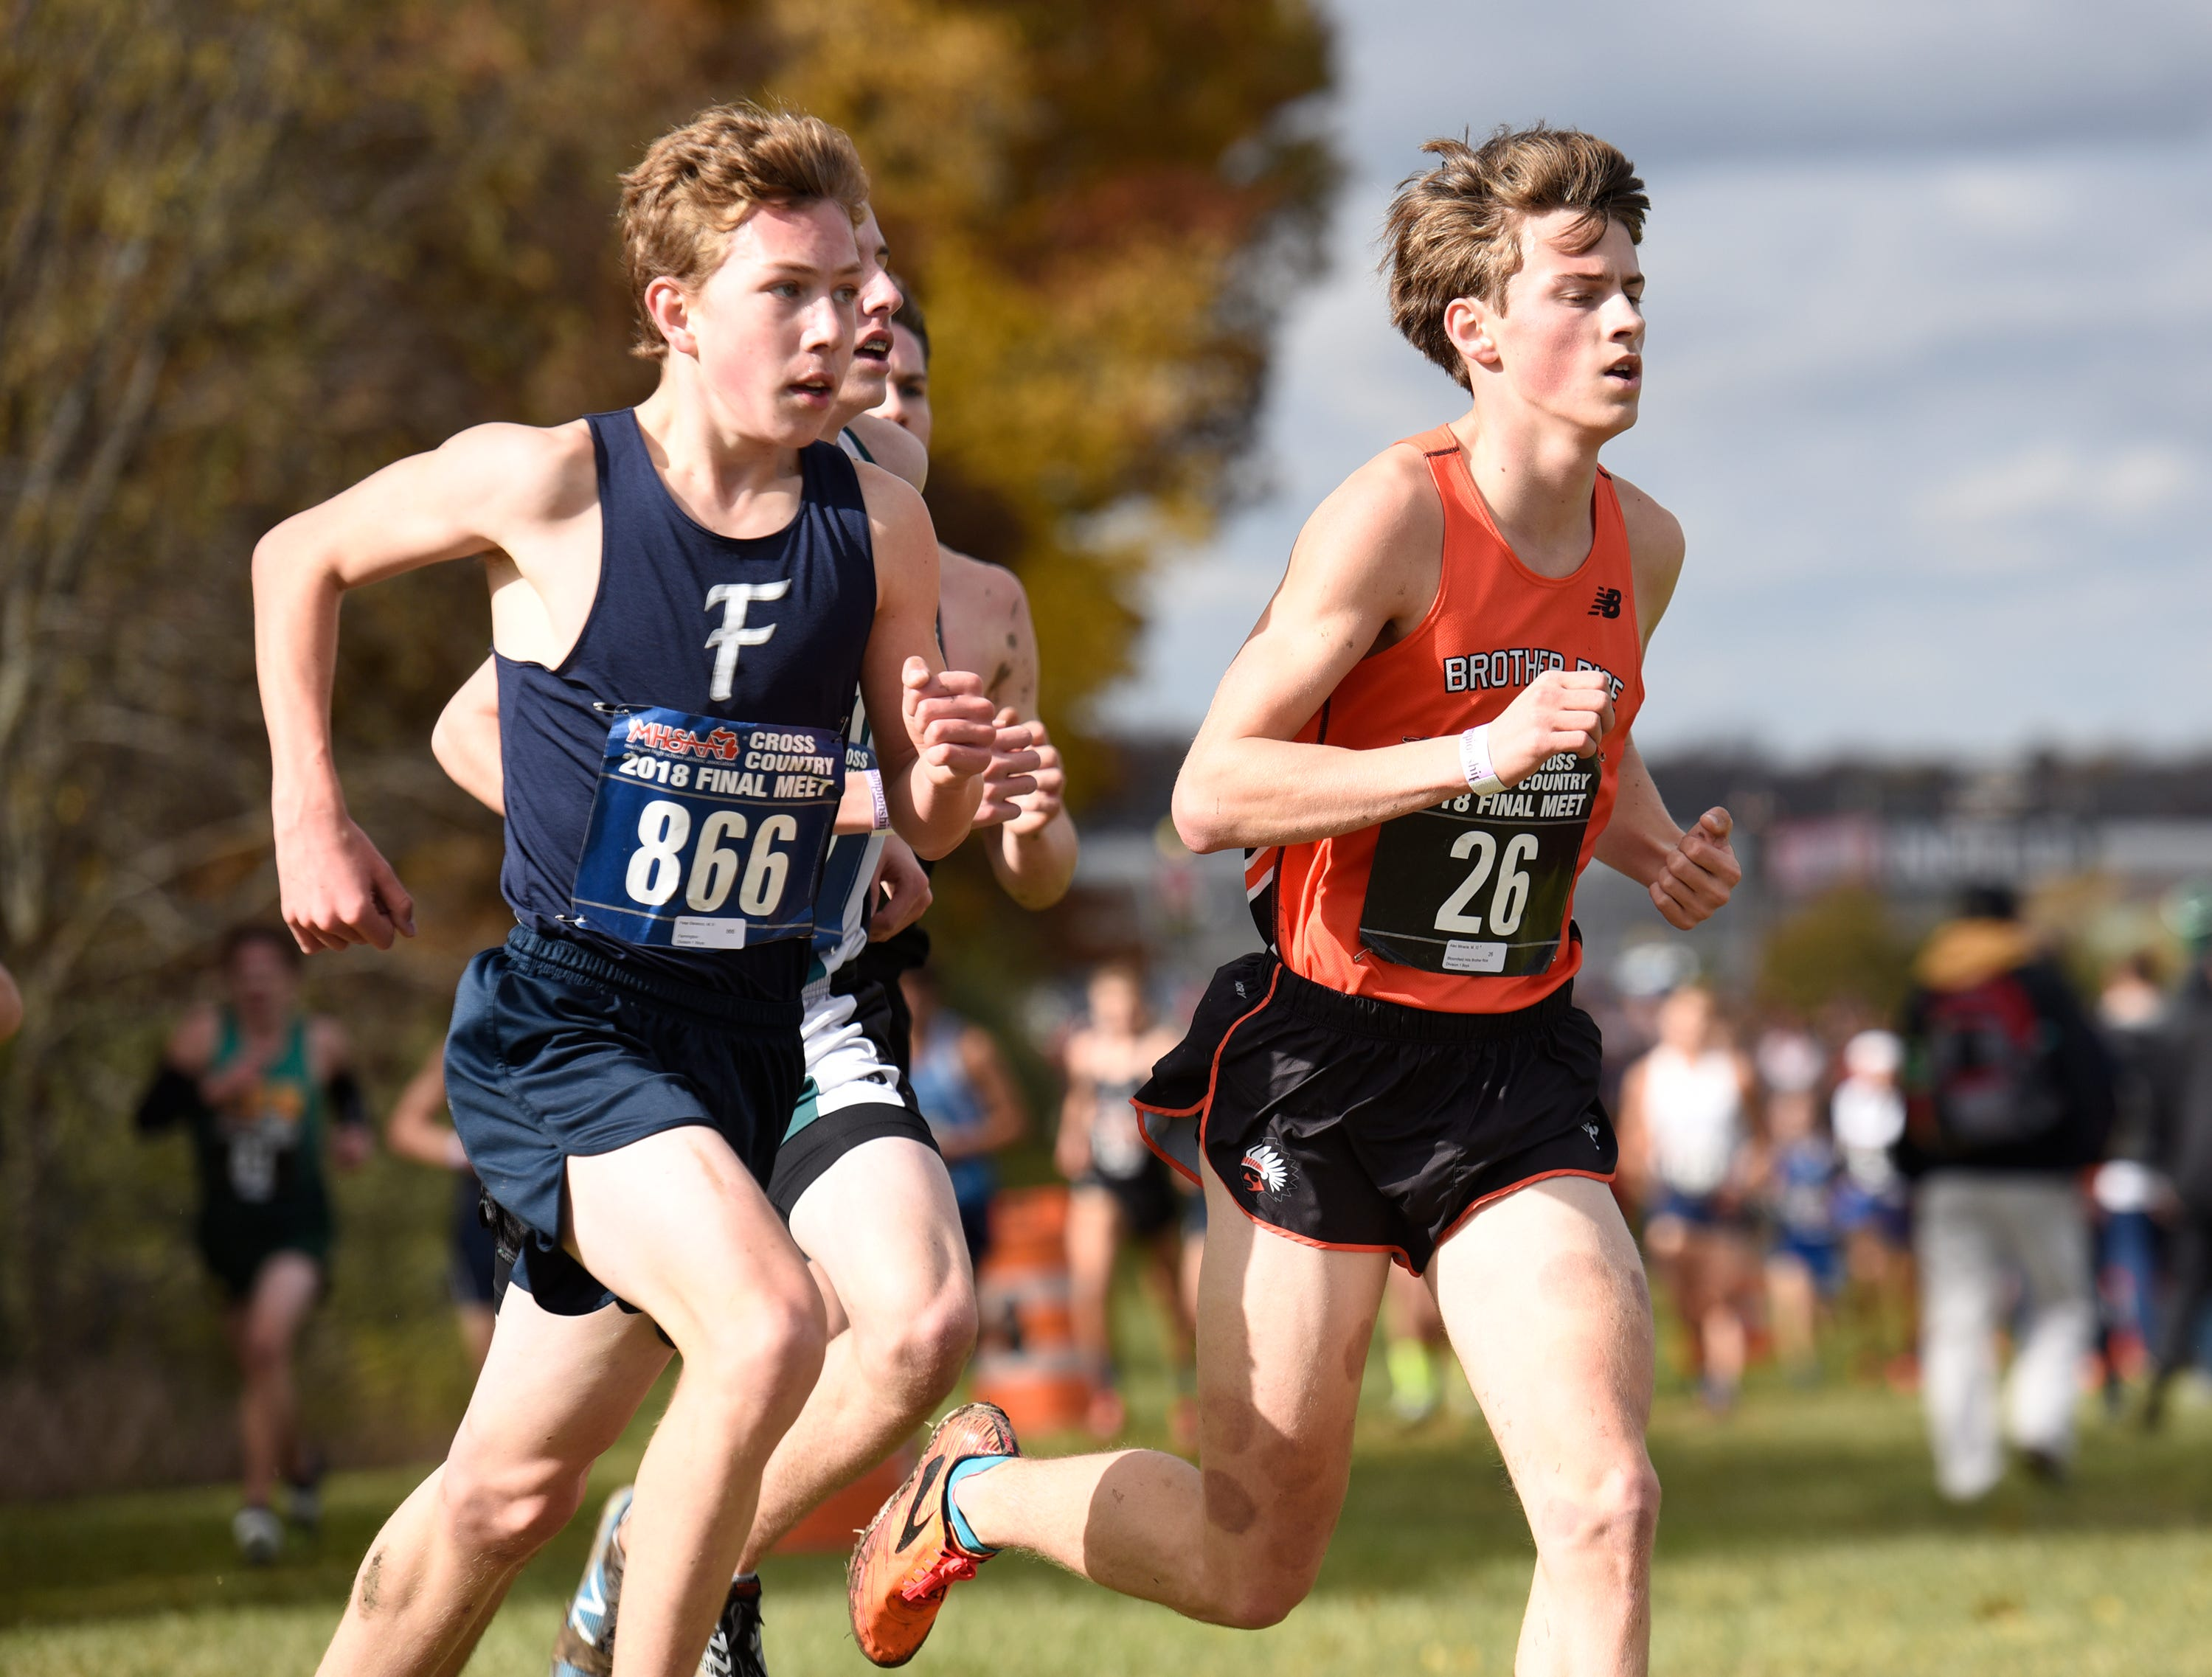 Farmington's Peter Baracco and Brother Rice runner Alec Miracle during the Division 1 2018 cross country finals at Michigan International Speedway.